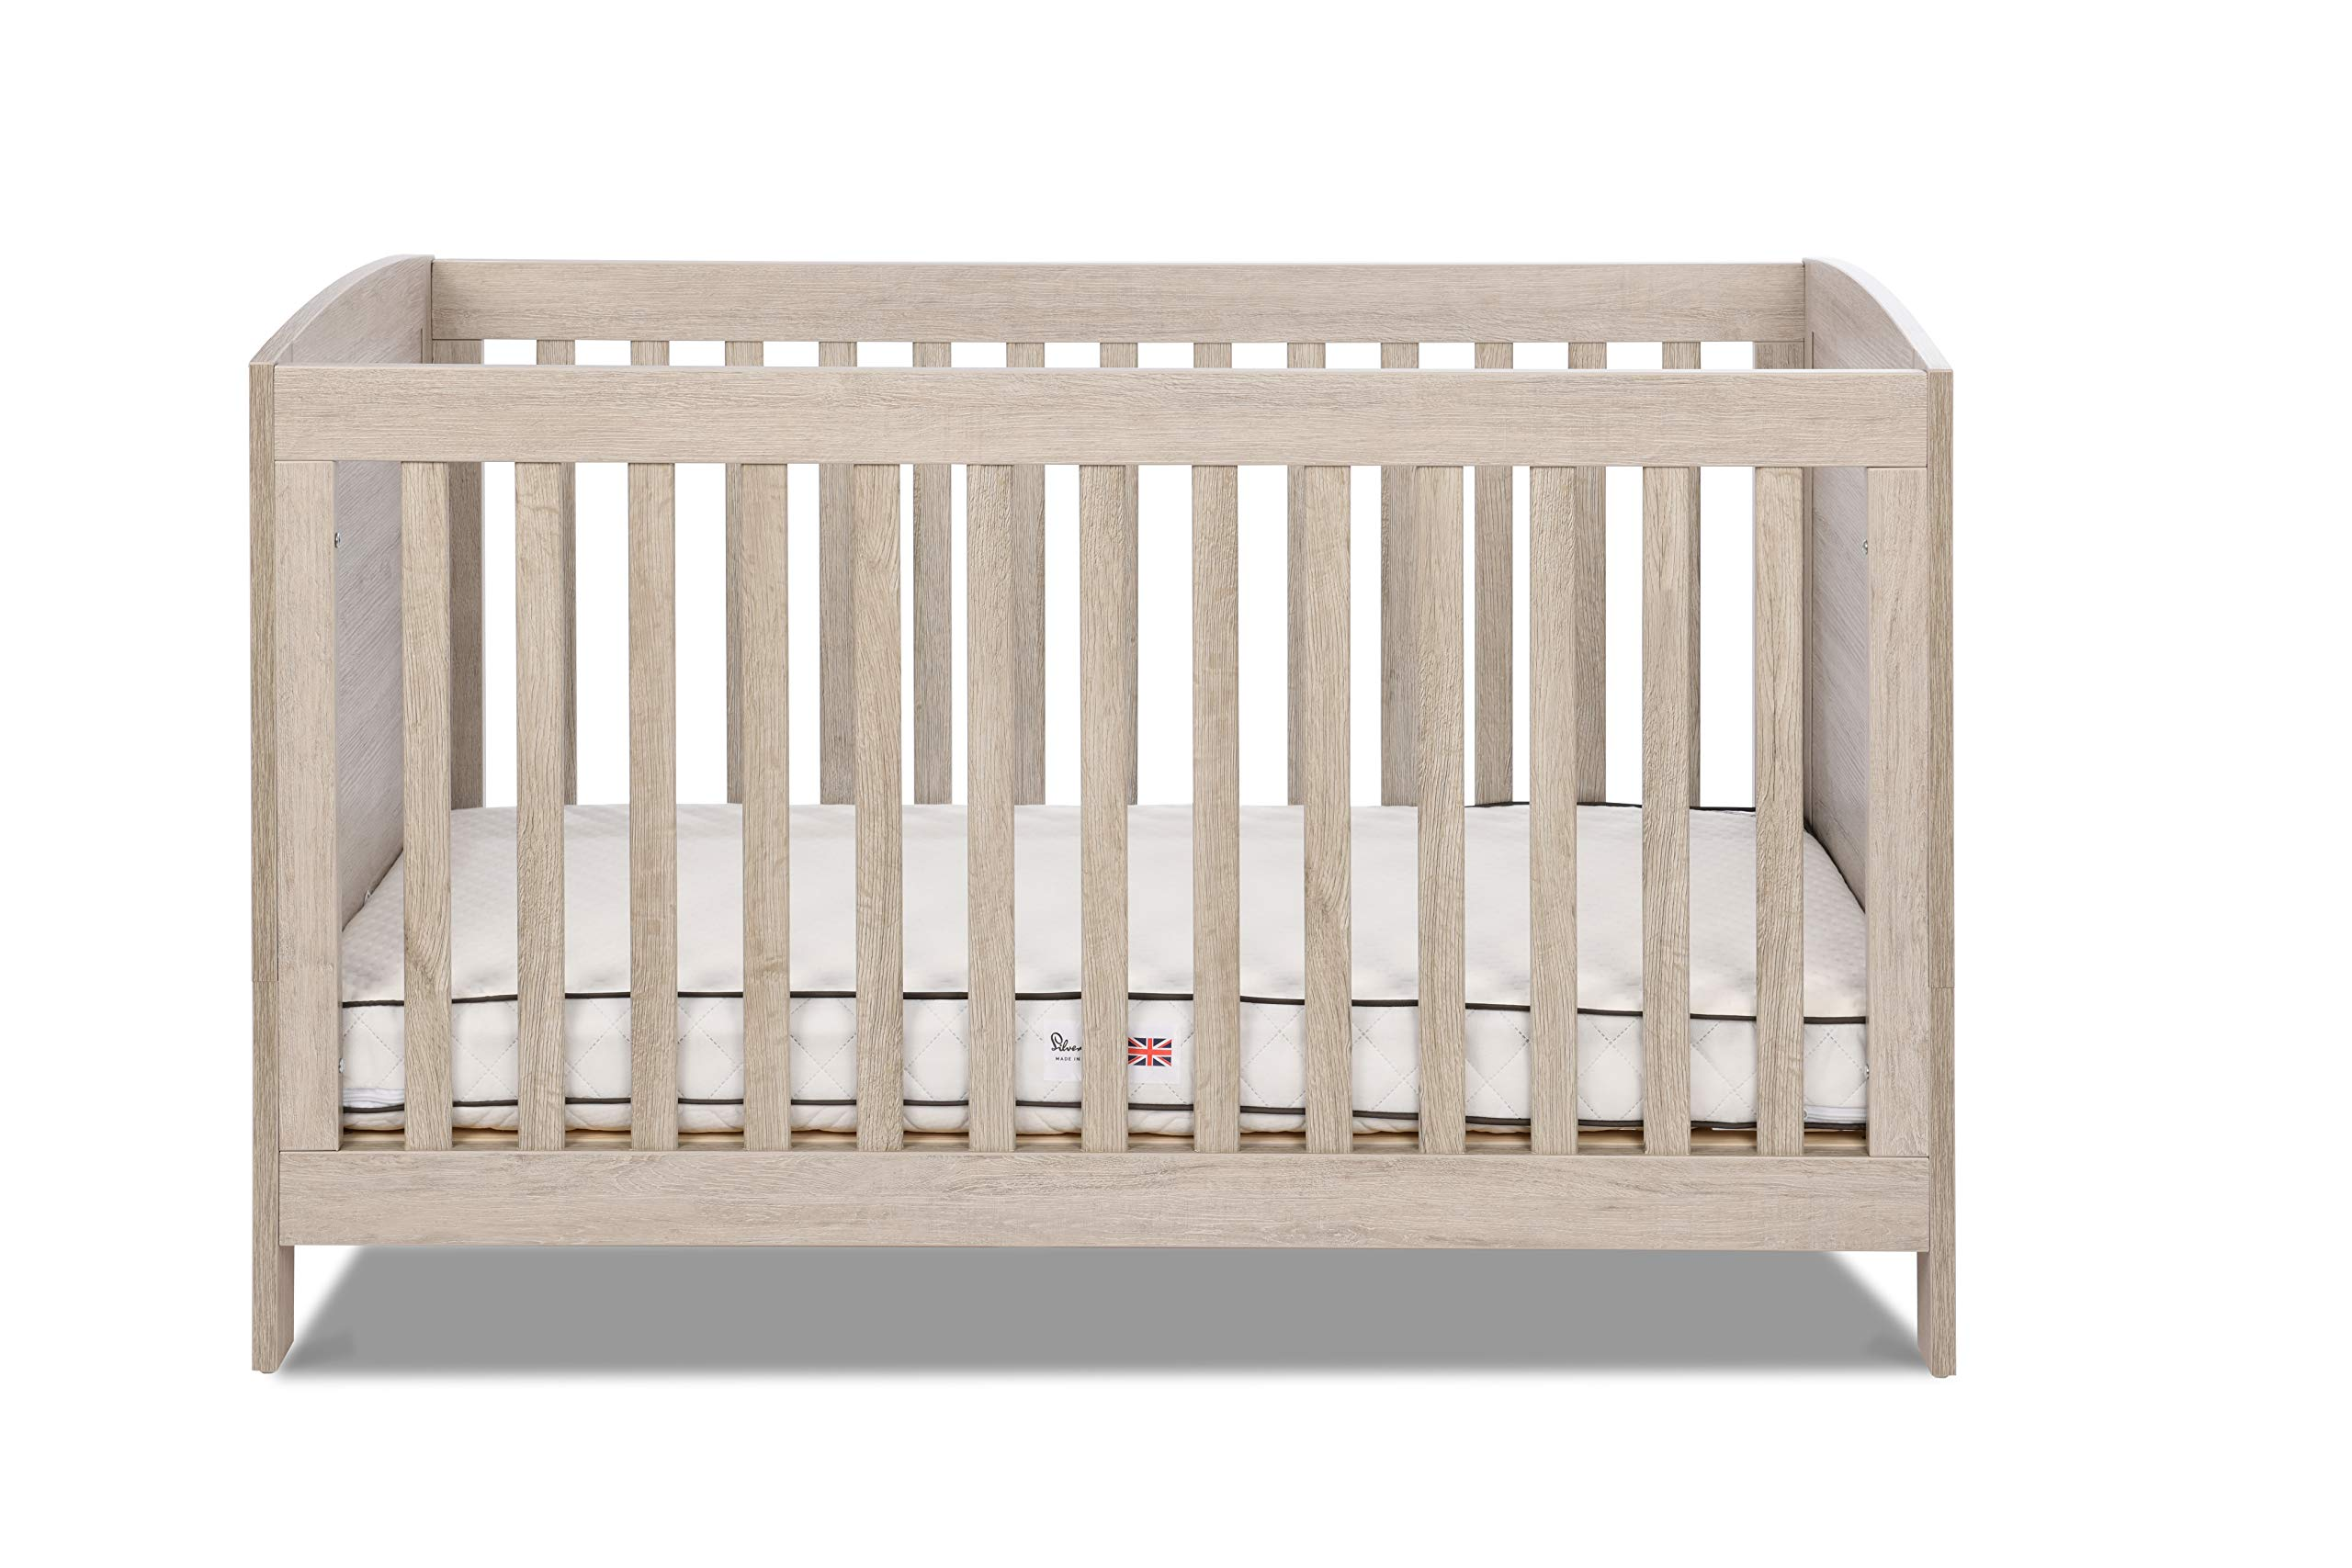 Silver Cross New England Cot Bed and Wardrobe Silver Cross 3 base height positions Suitable from birth to 4 years Converts into toddler bed 2